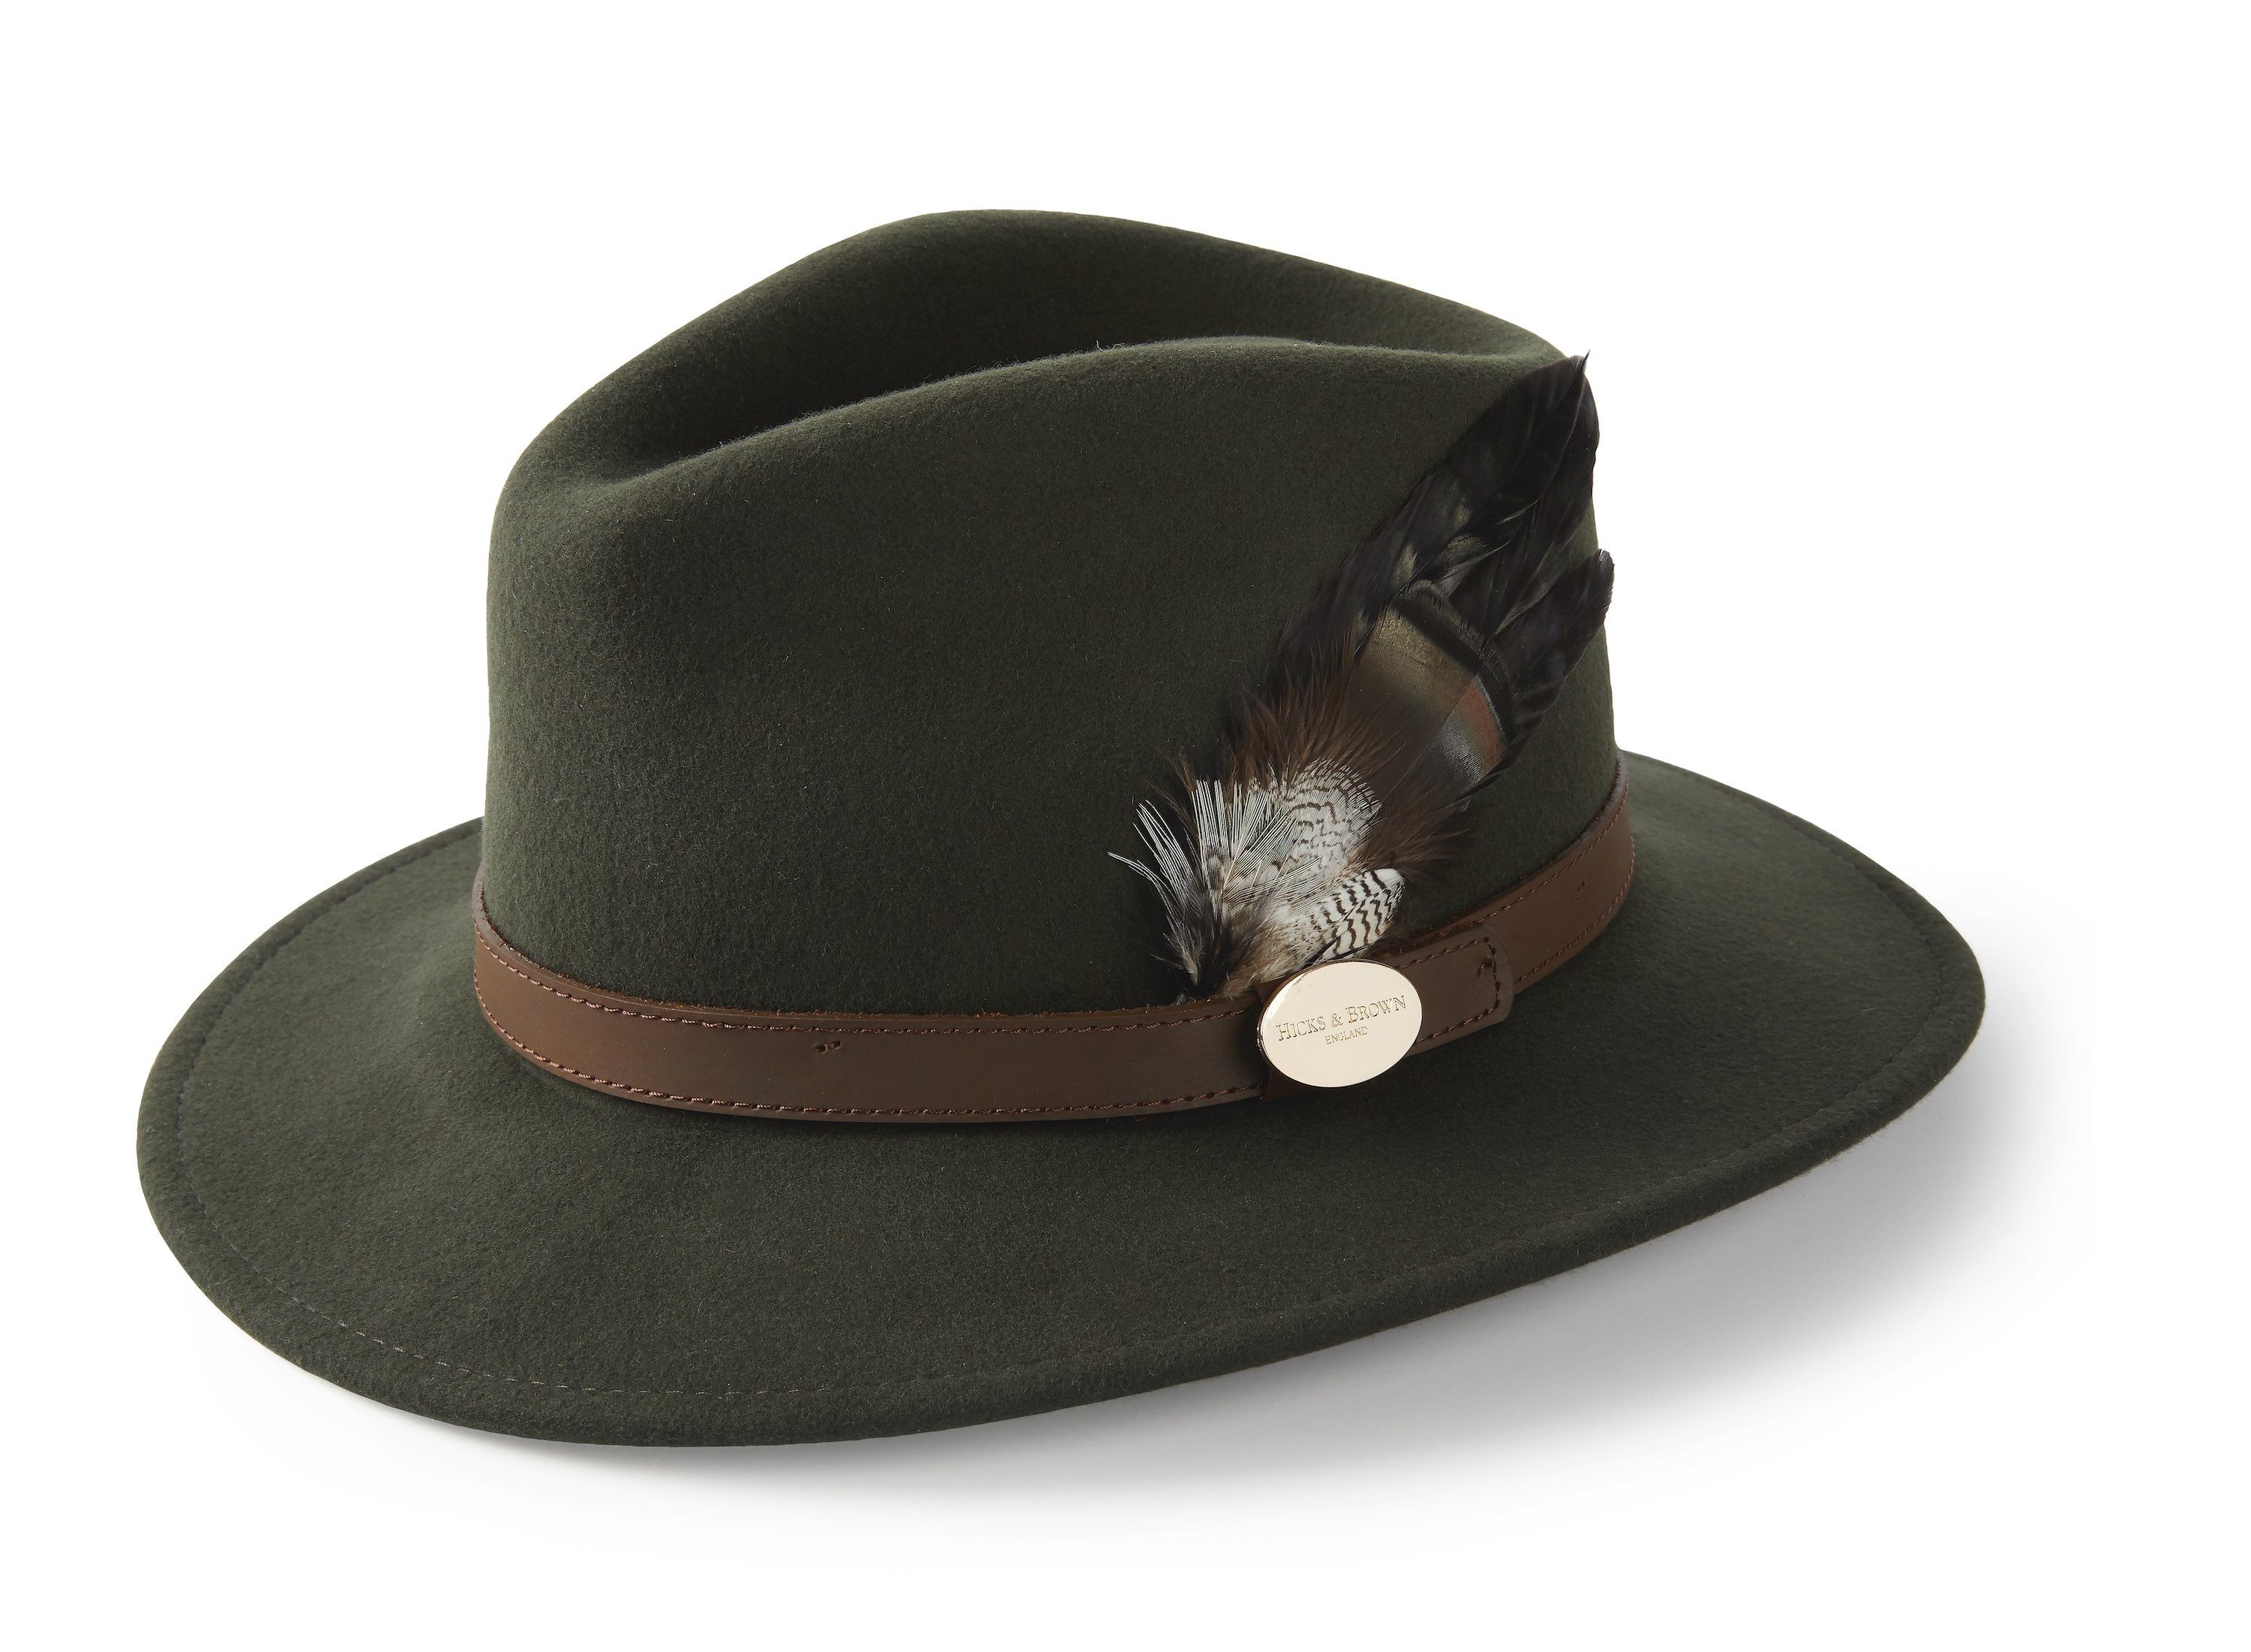 Hicks & Brown The Suffolk Fedora in Olive Green (Bronze Duck Feather)